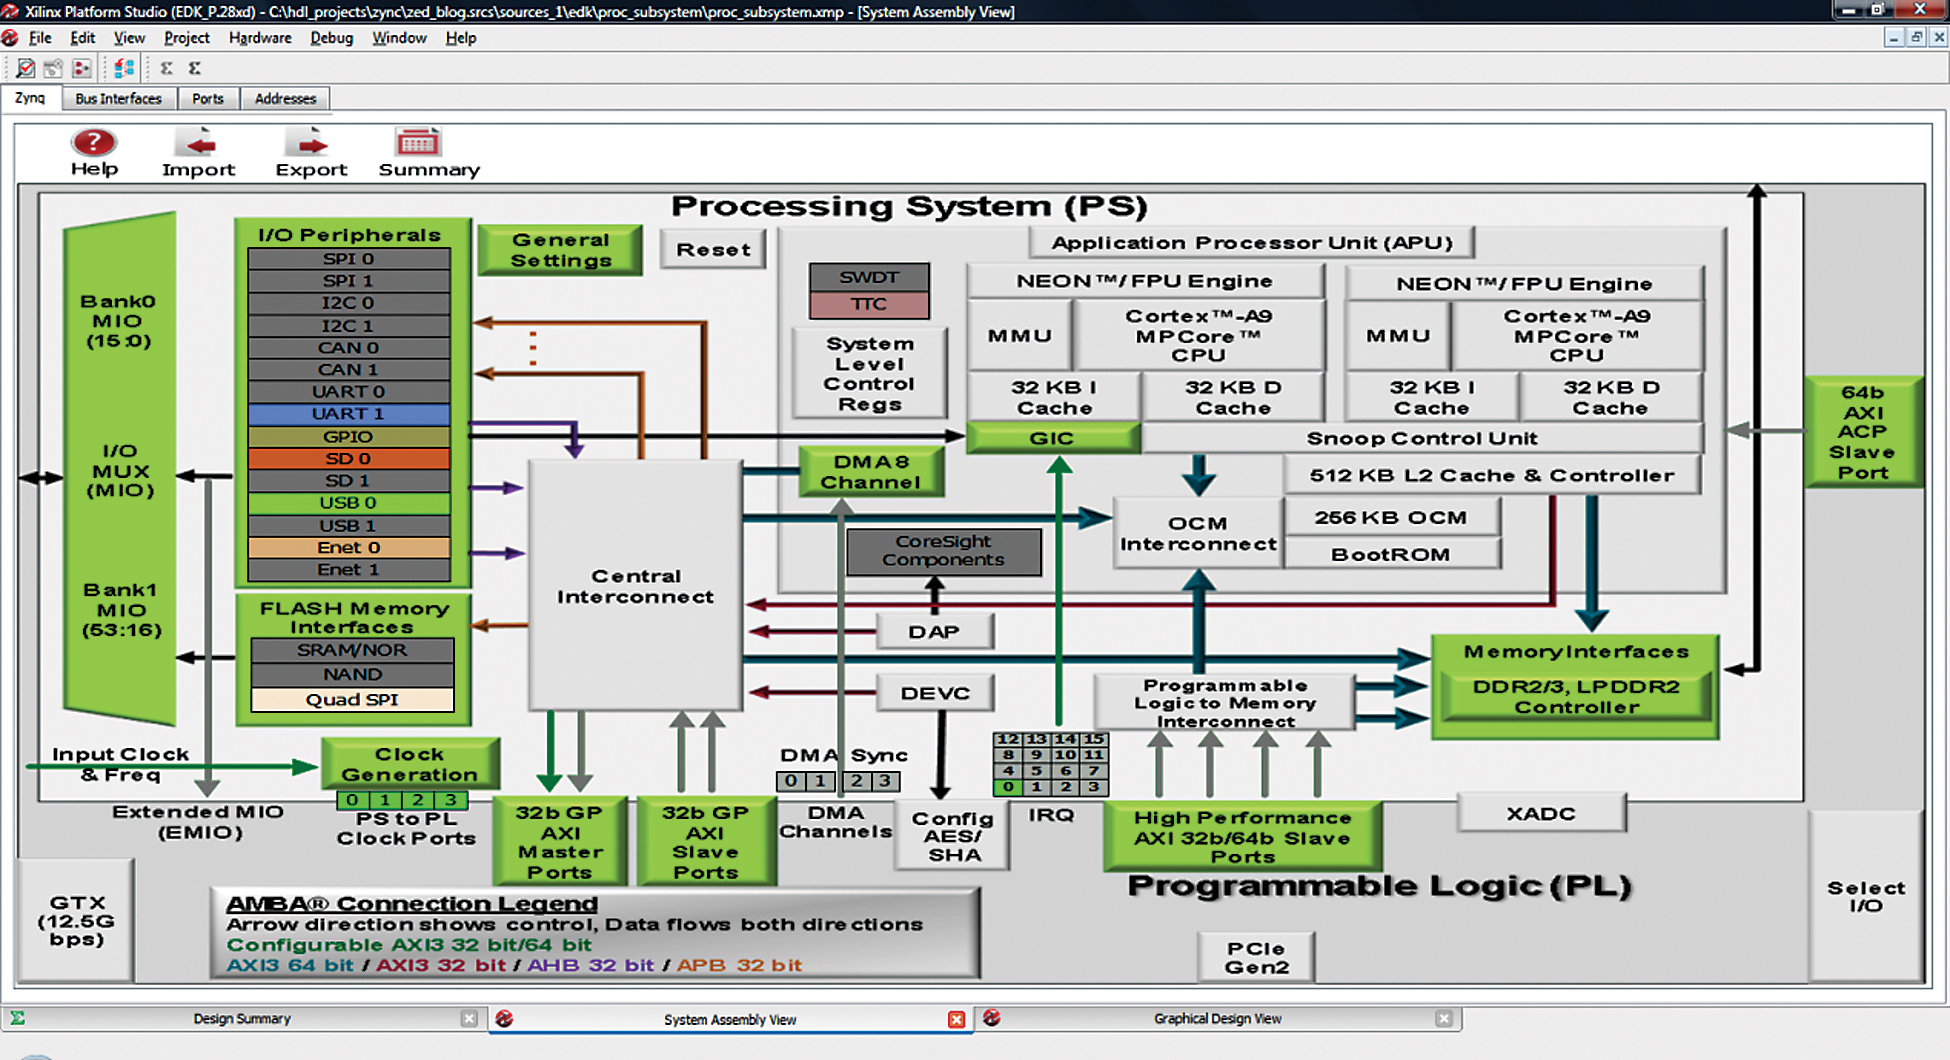 Getting your Zynq SoC design up and running using PlanAhead